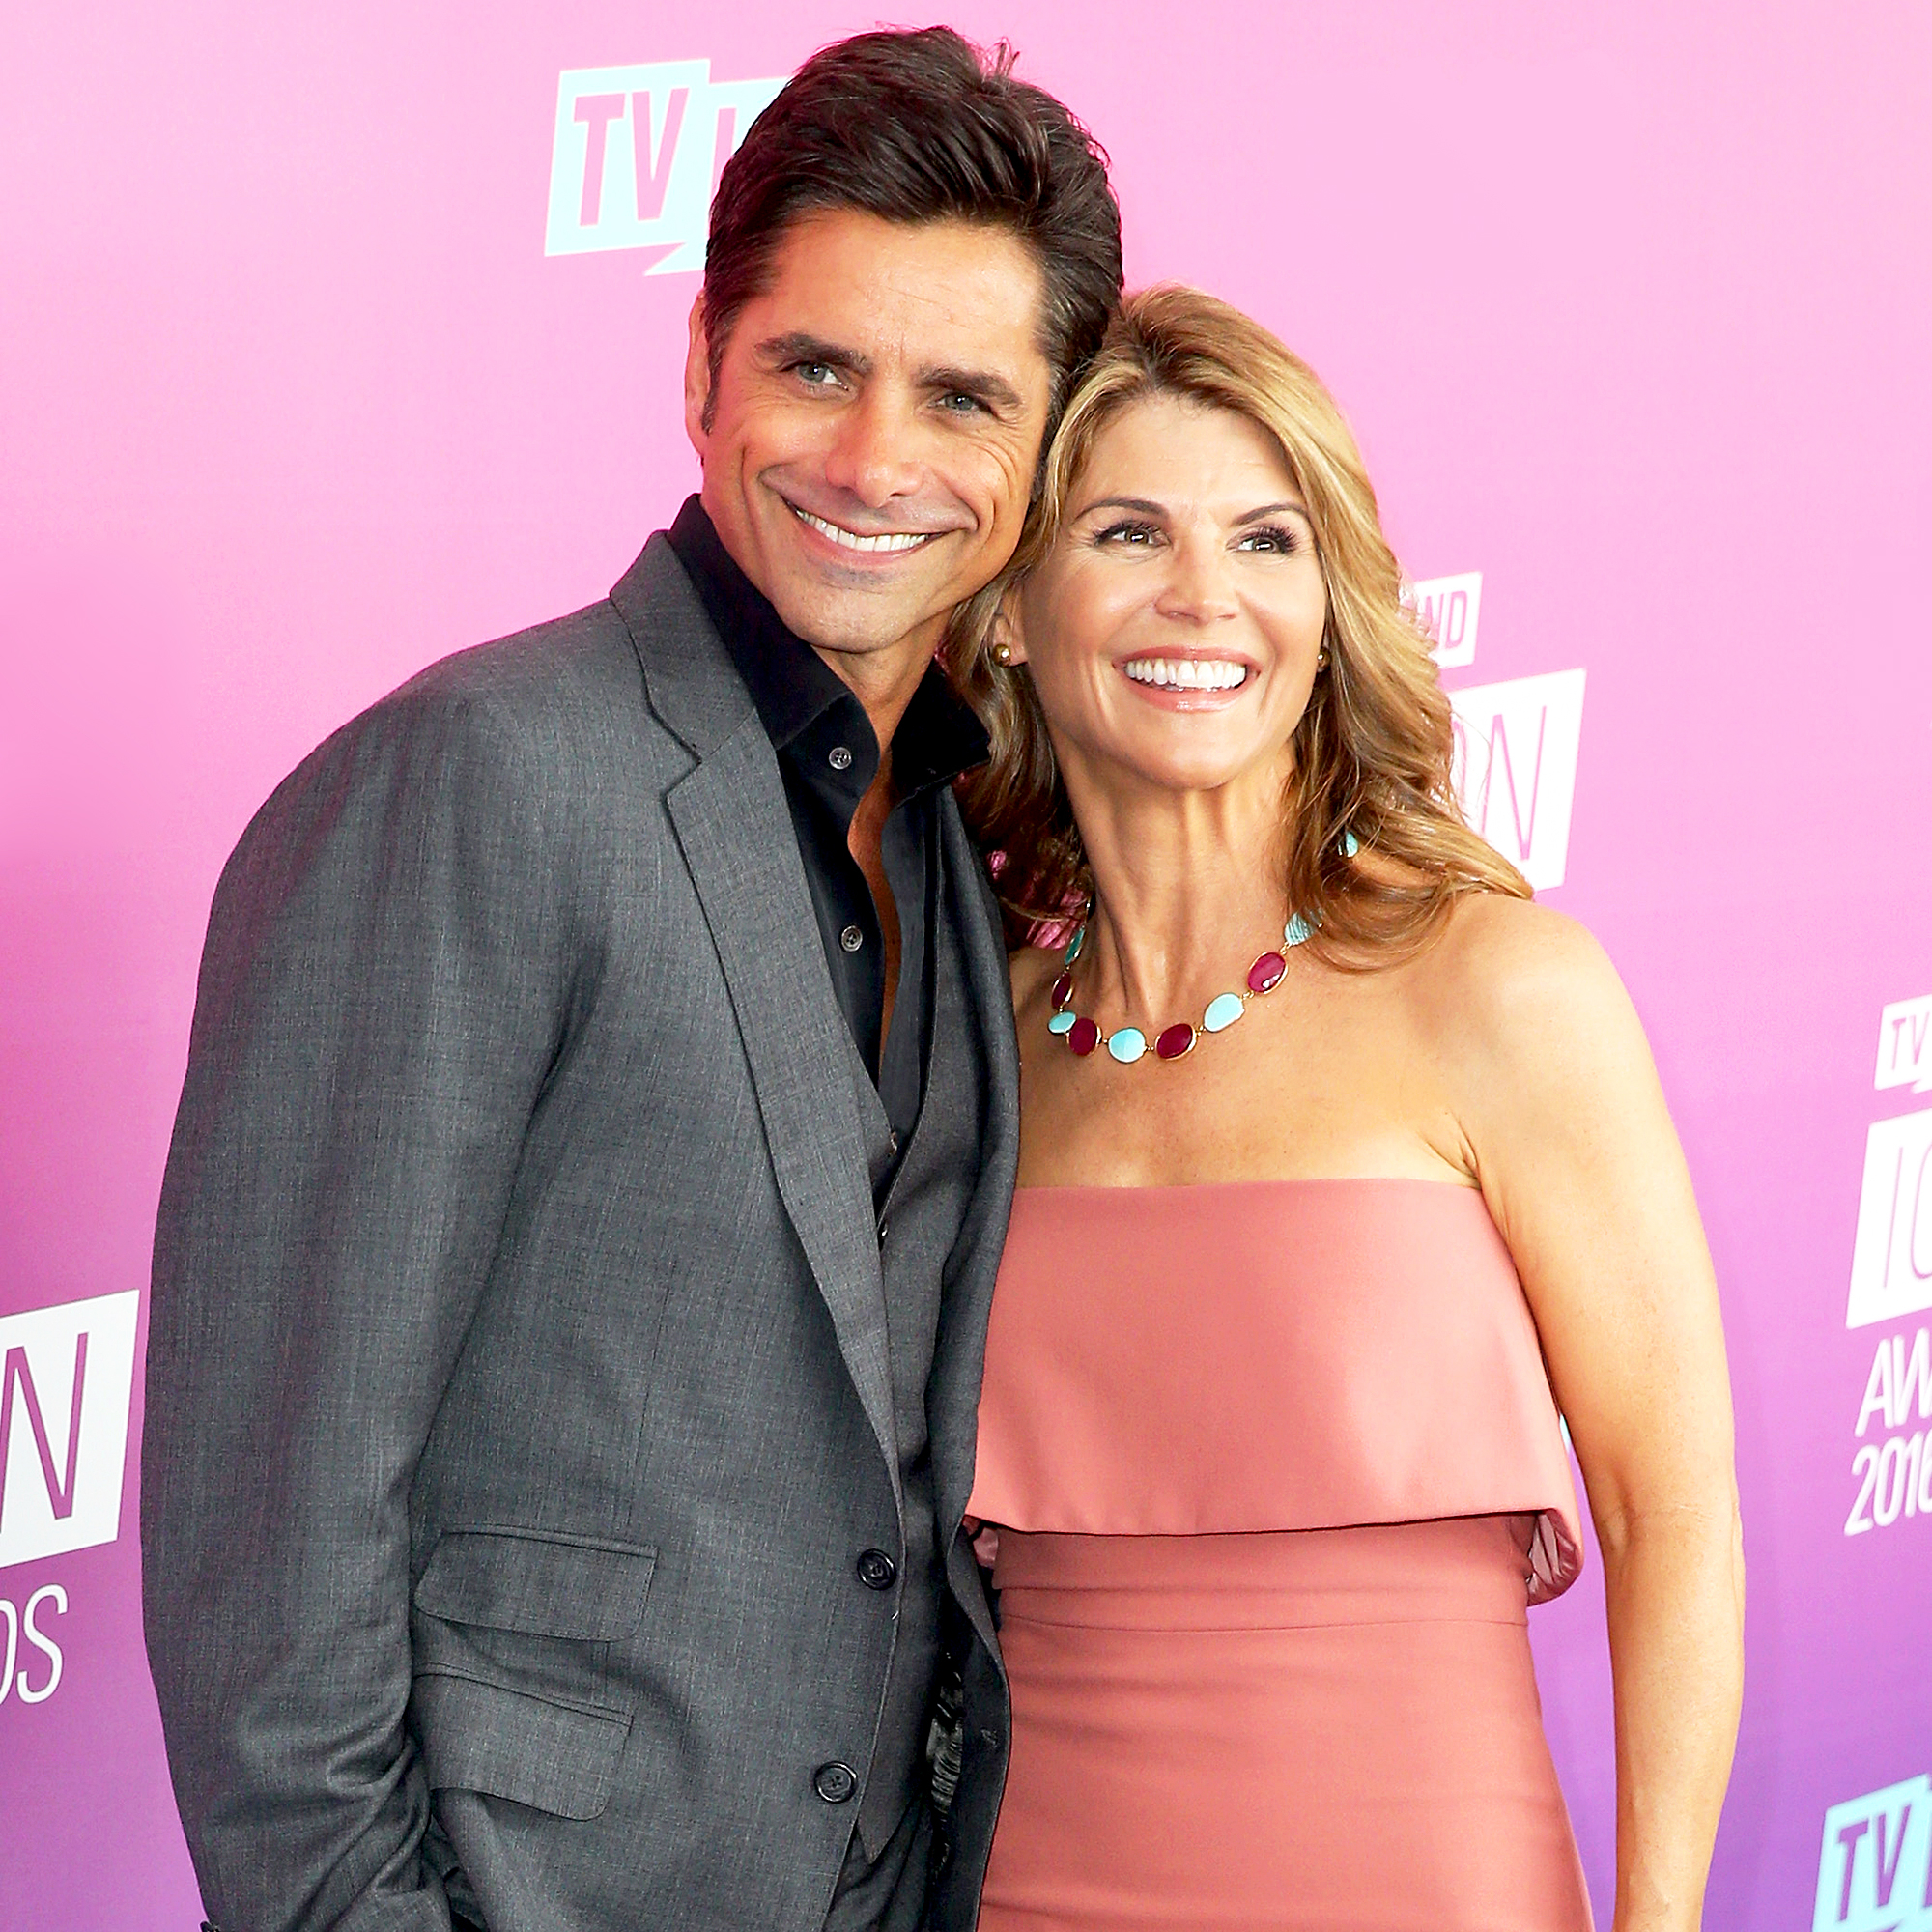 John Stamos and Lori Loughlin